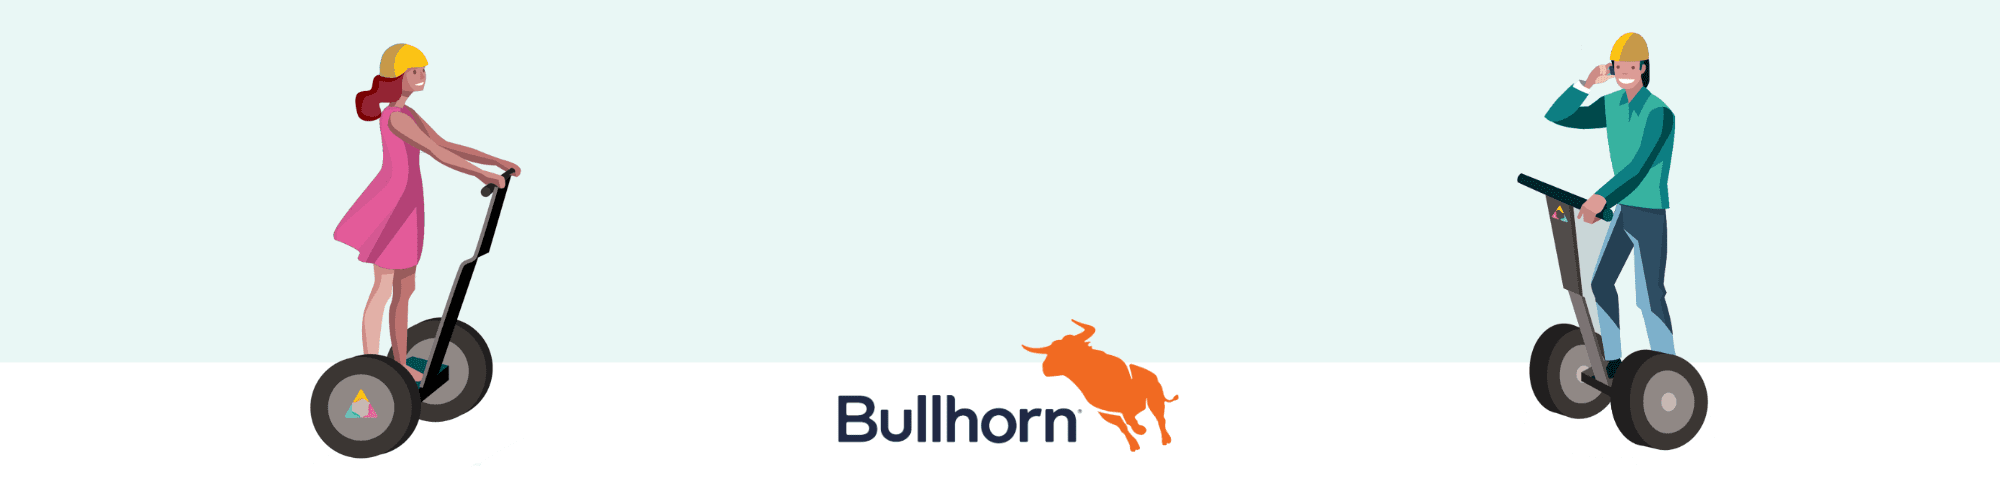 bullhorn-training-hack-for-recruiters-using-bullhorn-crm